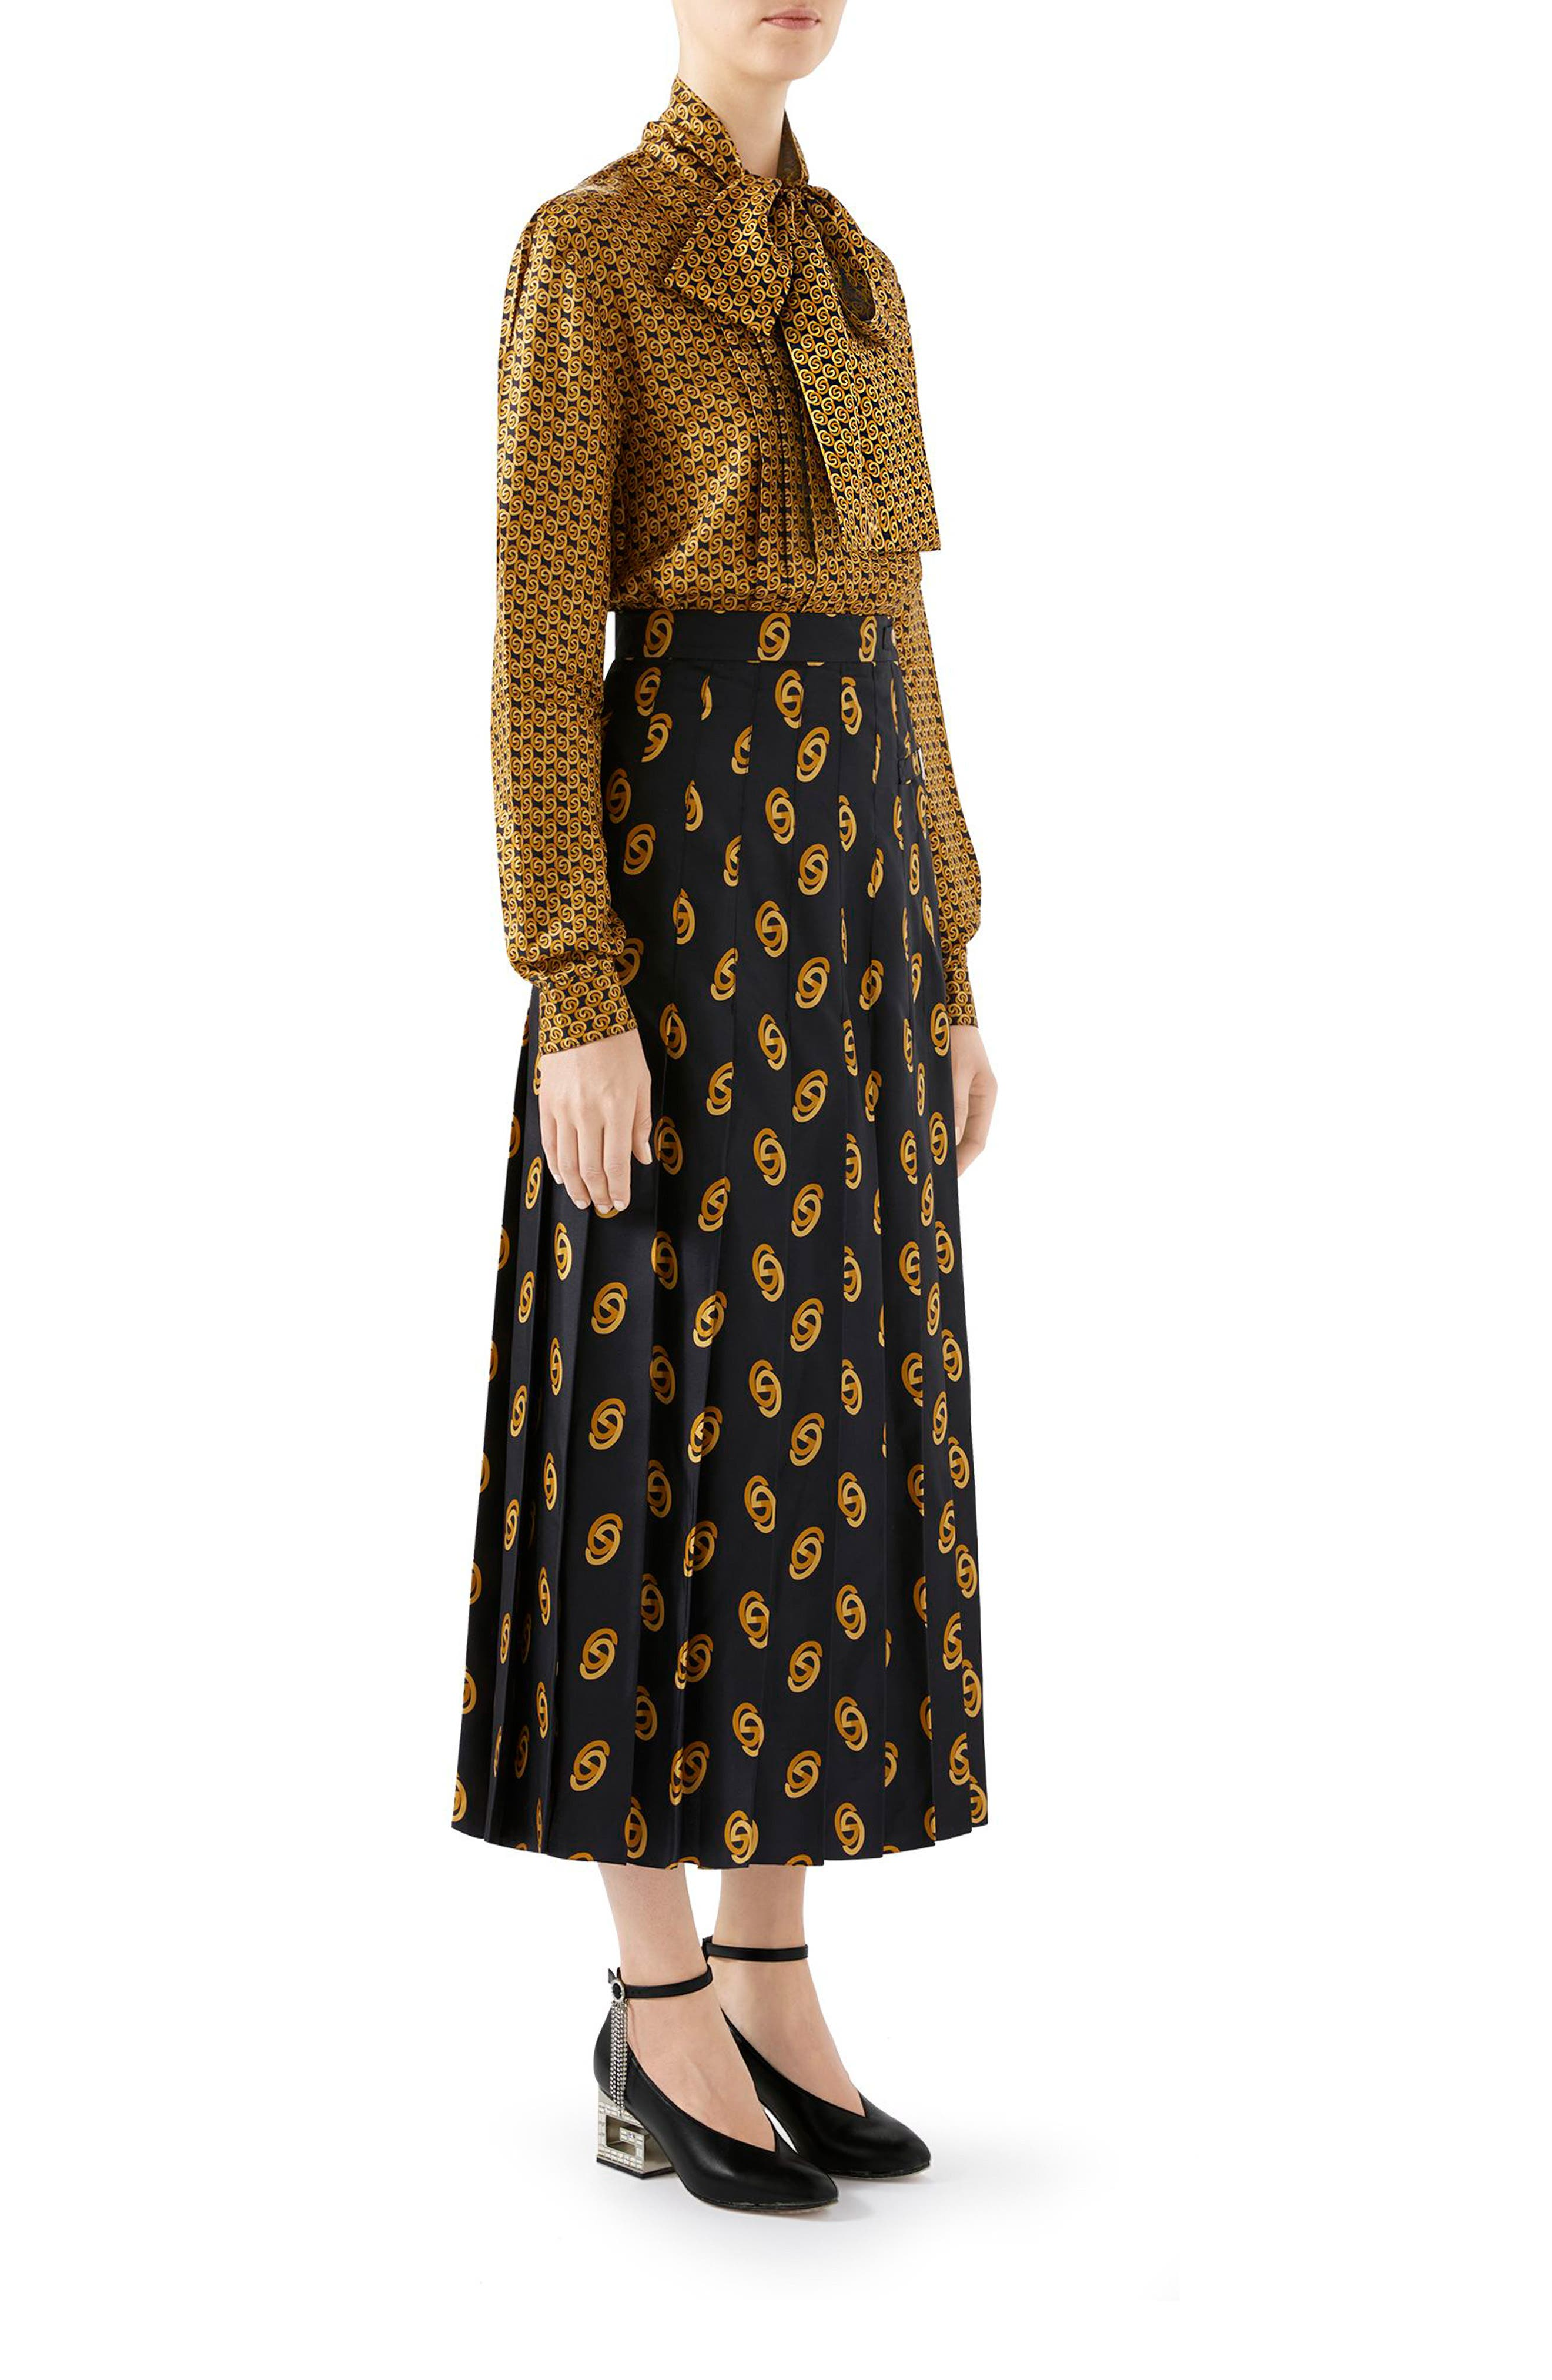 GUCCI,                             Pleated GG Silk Twill Skirt,                             Alternate thumbnail 3, color,                             1744 BLACK/ GOLD PRINTED